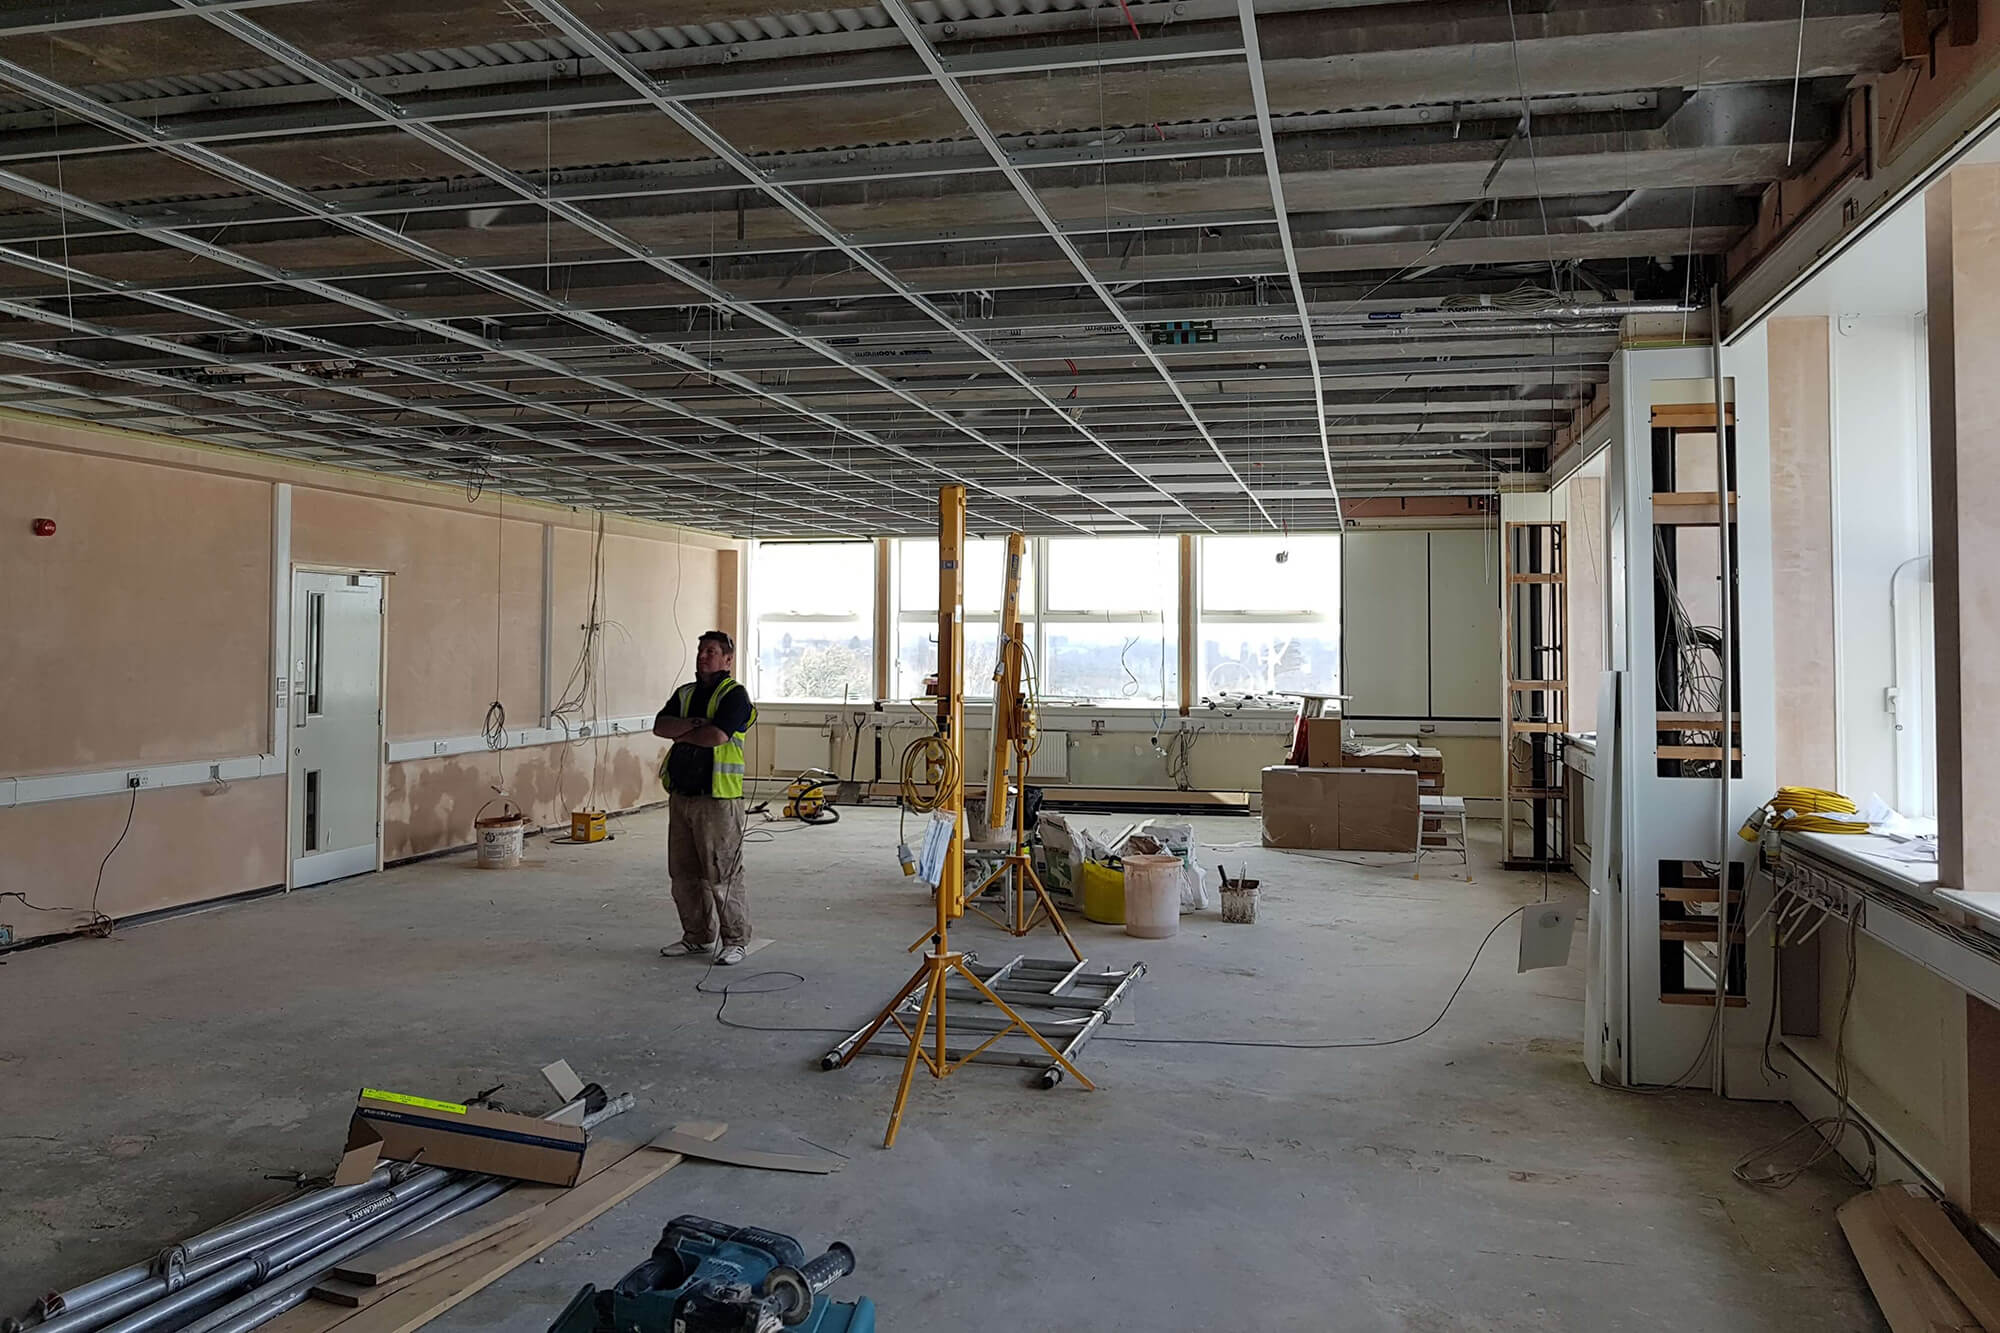 Improvement works to a room at the University before completion